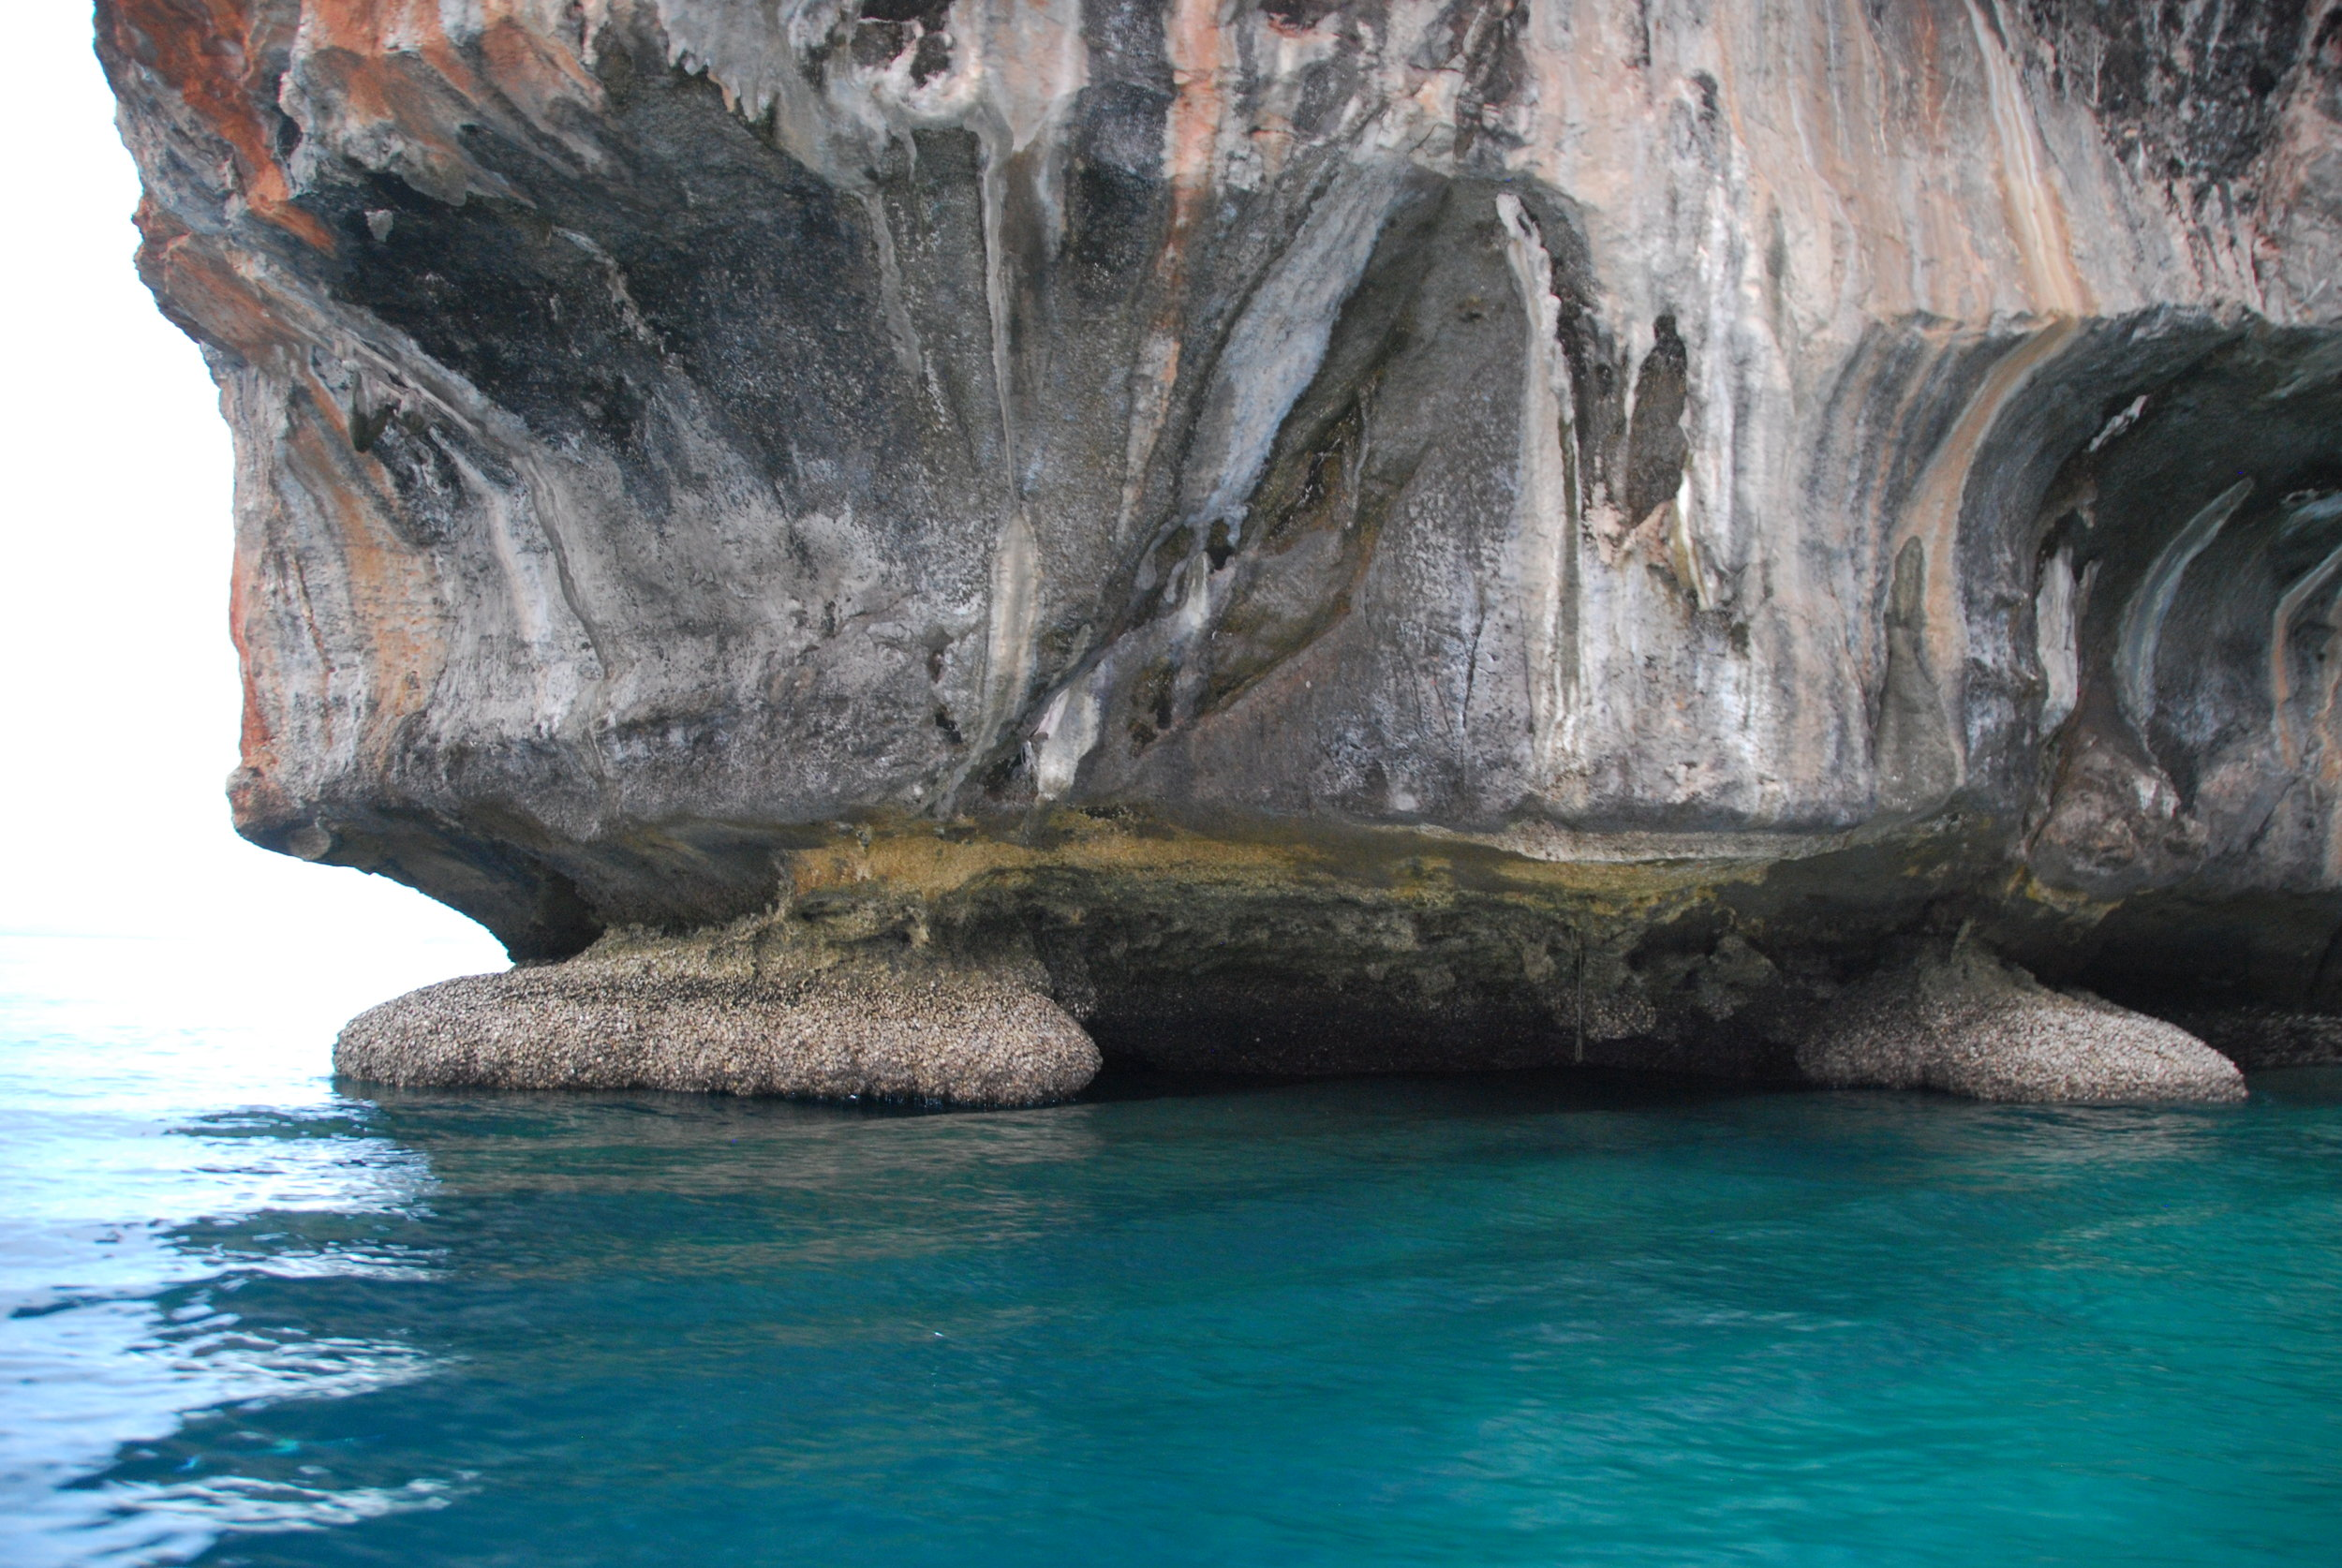 Epic Colors - Where in the world is this? Have you been here yet?